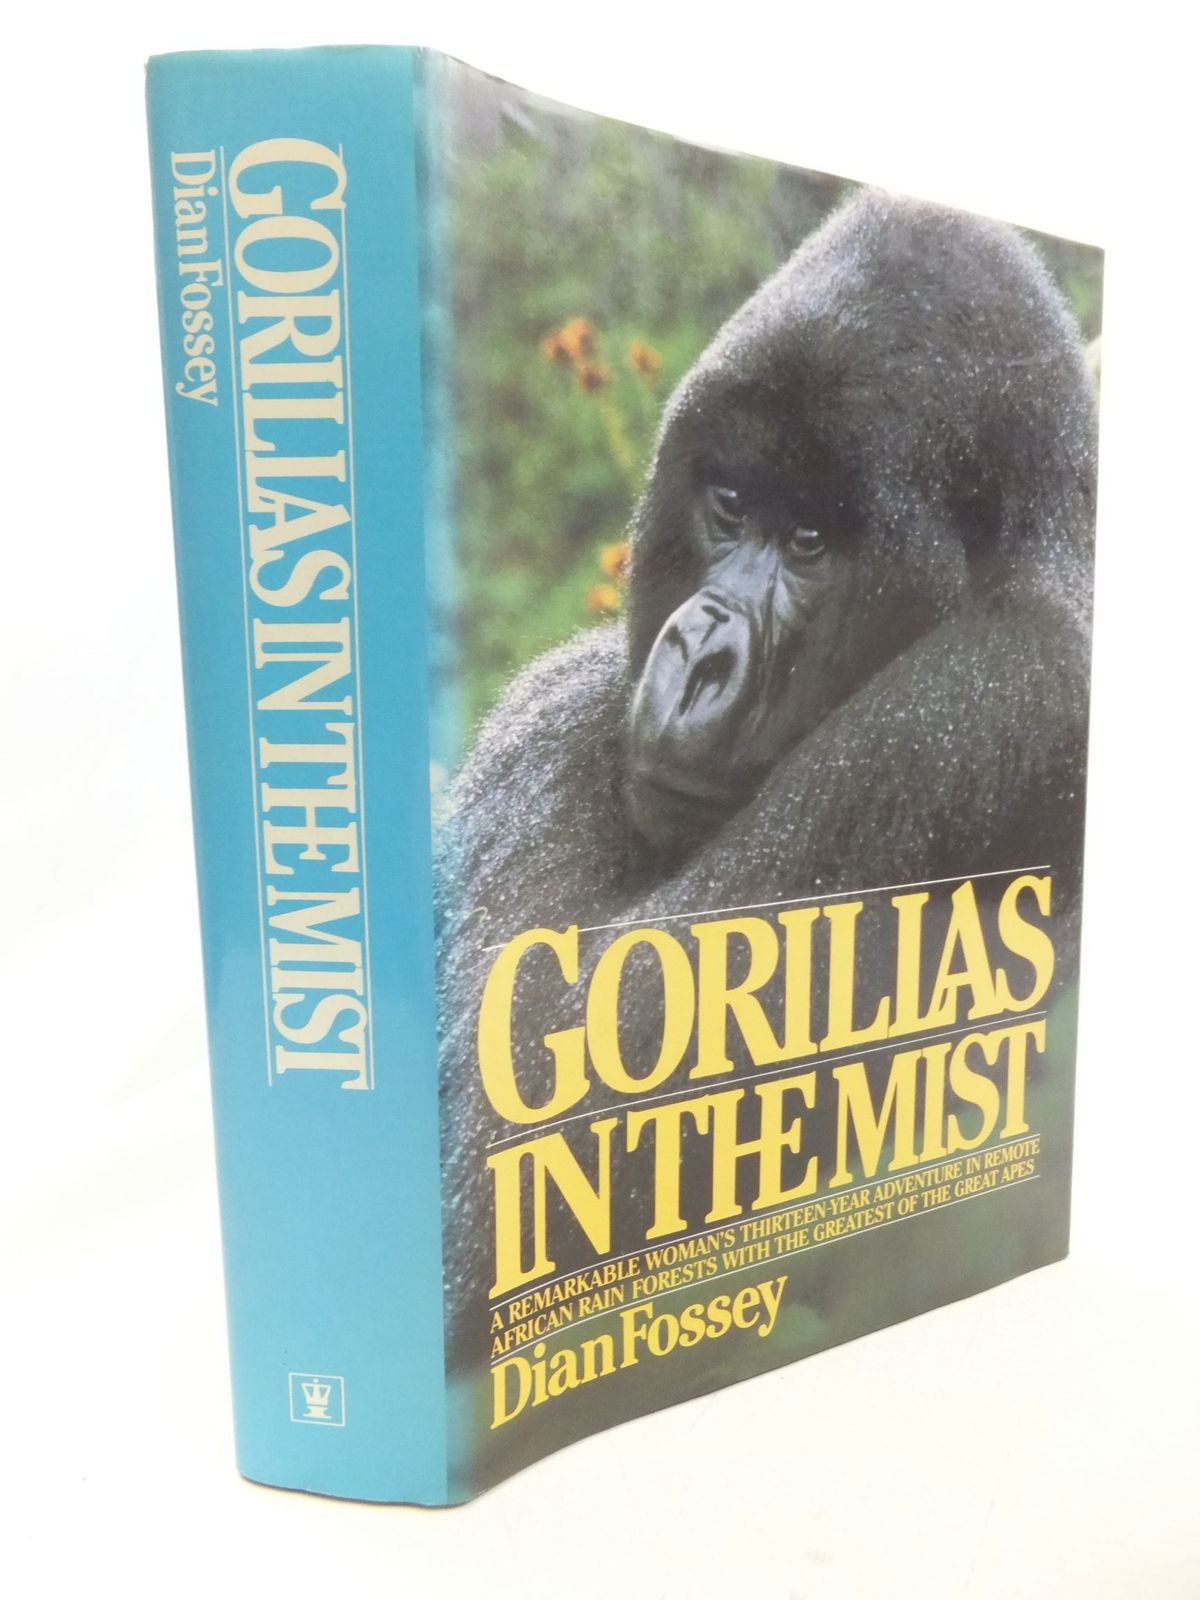 life in the wild in gorillas in the mist by dian fossey ``gorillas in the mist: the adventure of dian fossey,`` about the famed primatologist who was murdered in 1985, is a conservationist`s dream vehicle, one which should inspire at least token envy in.